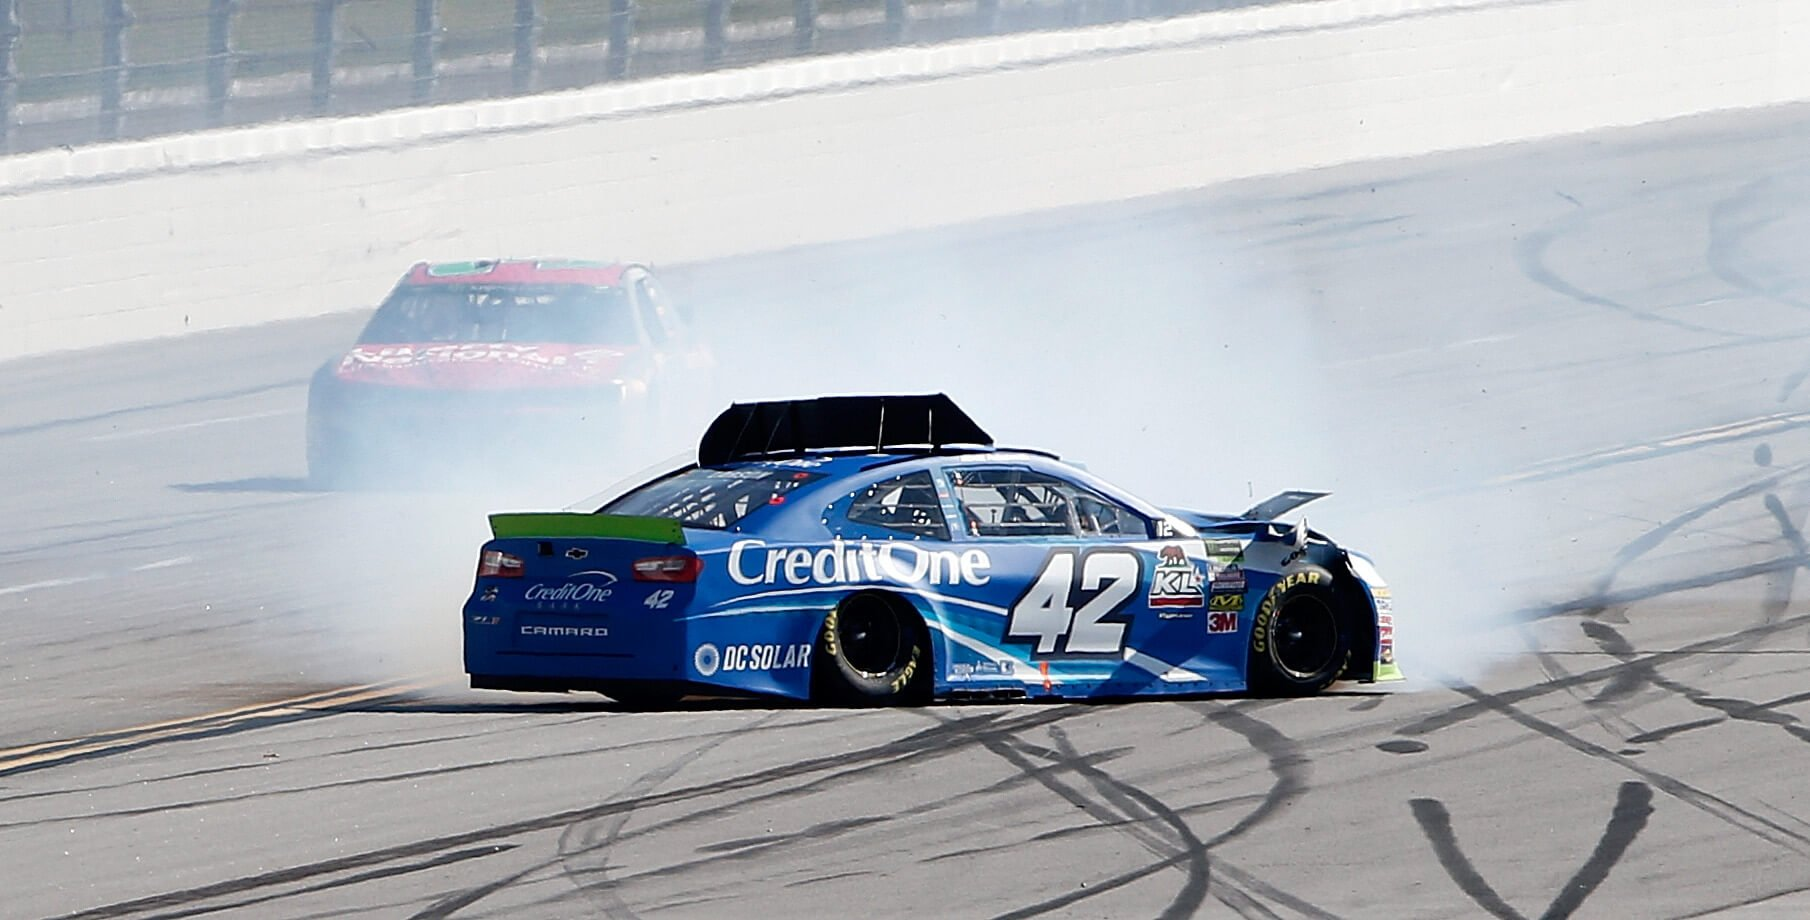 Elliott increases momentum with win at Kansas Speedway